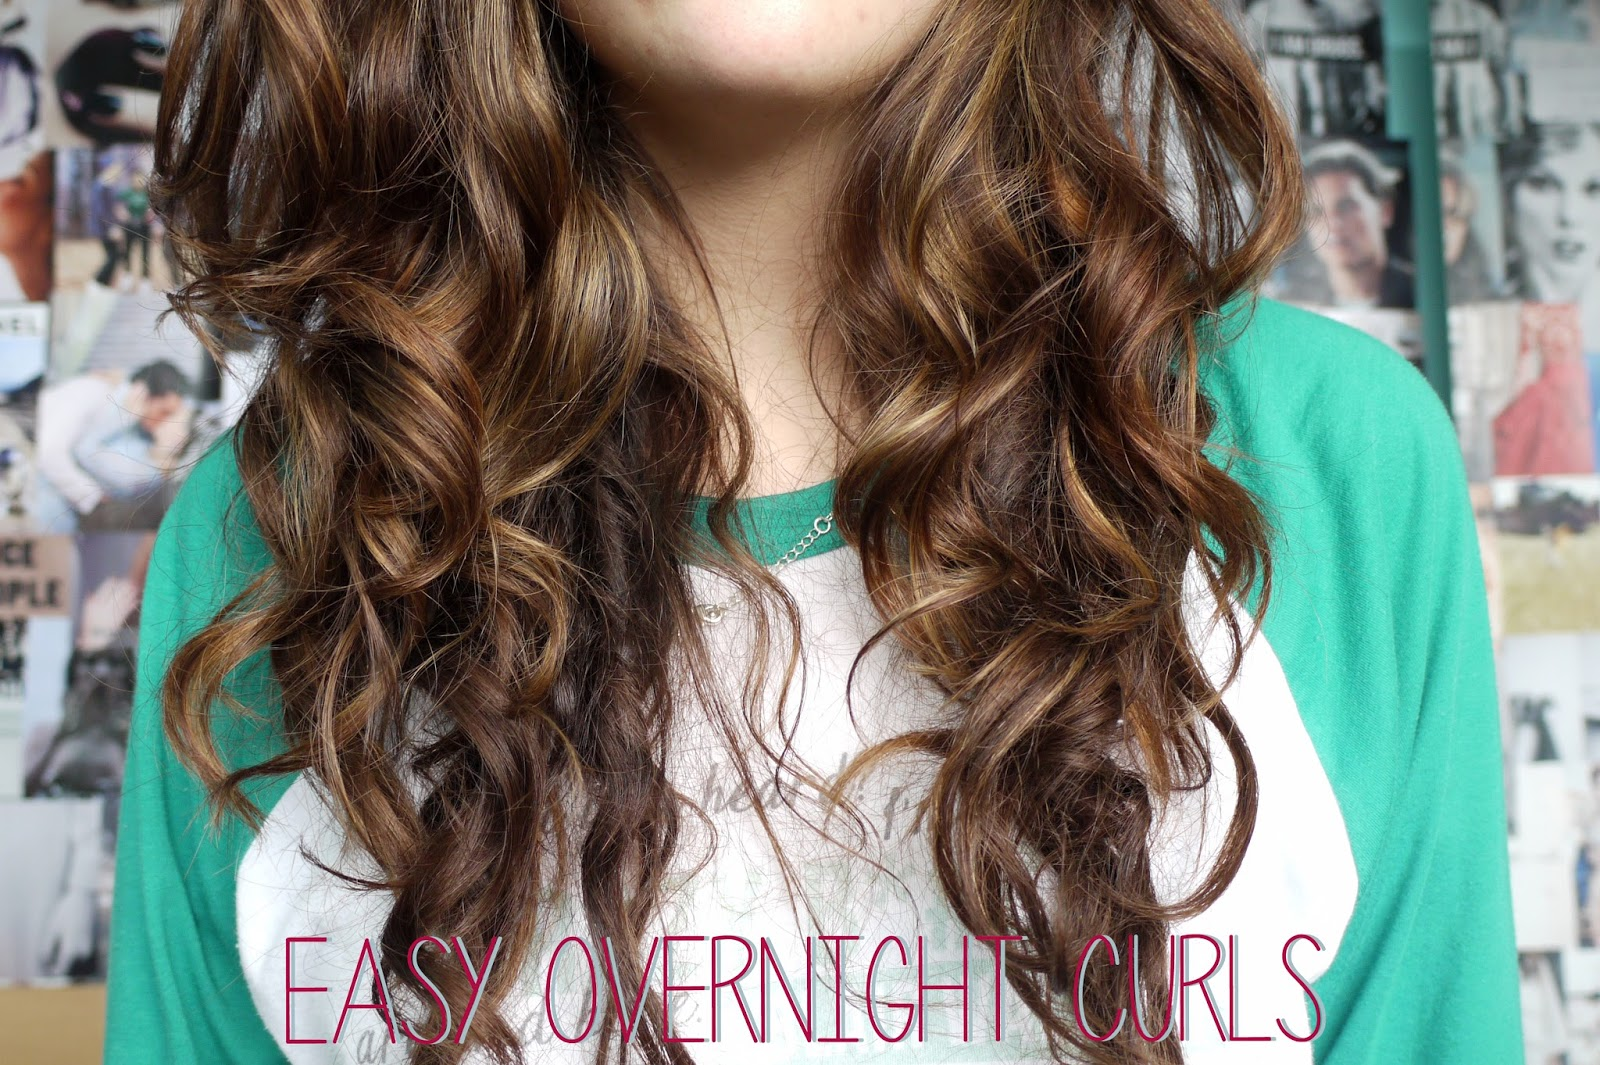 How To Make Hair Curly Naturally Overnight